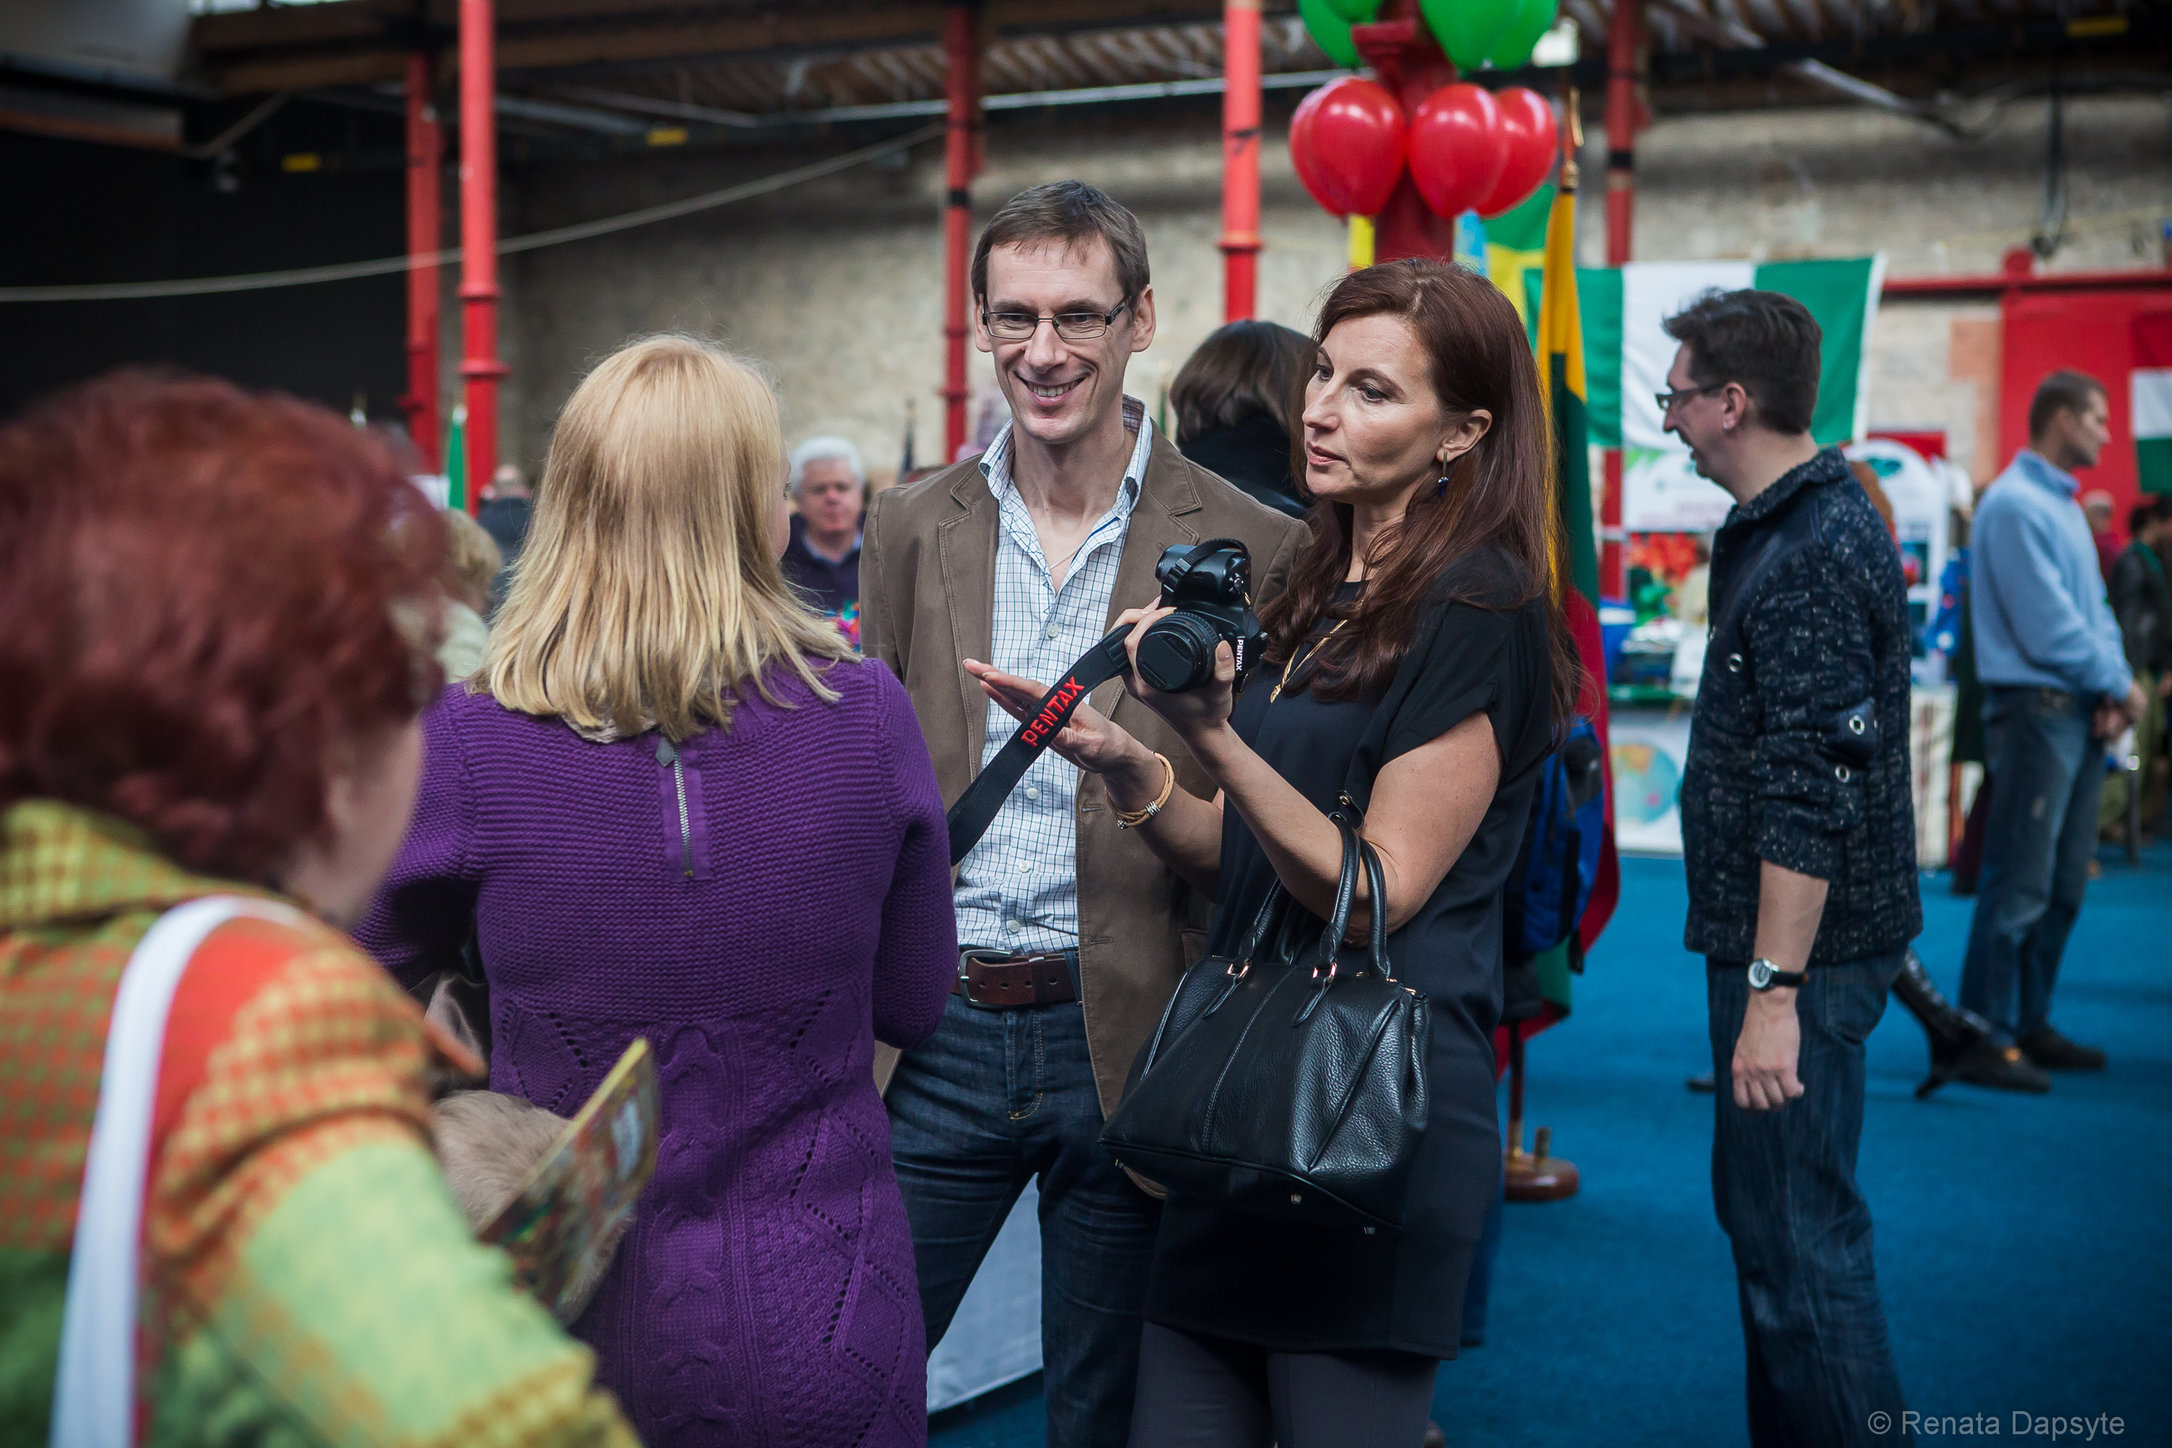 010_International Charity Bazaar Dublin 2013.JPG